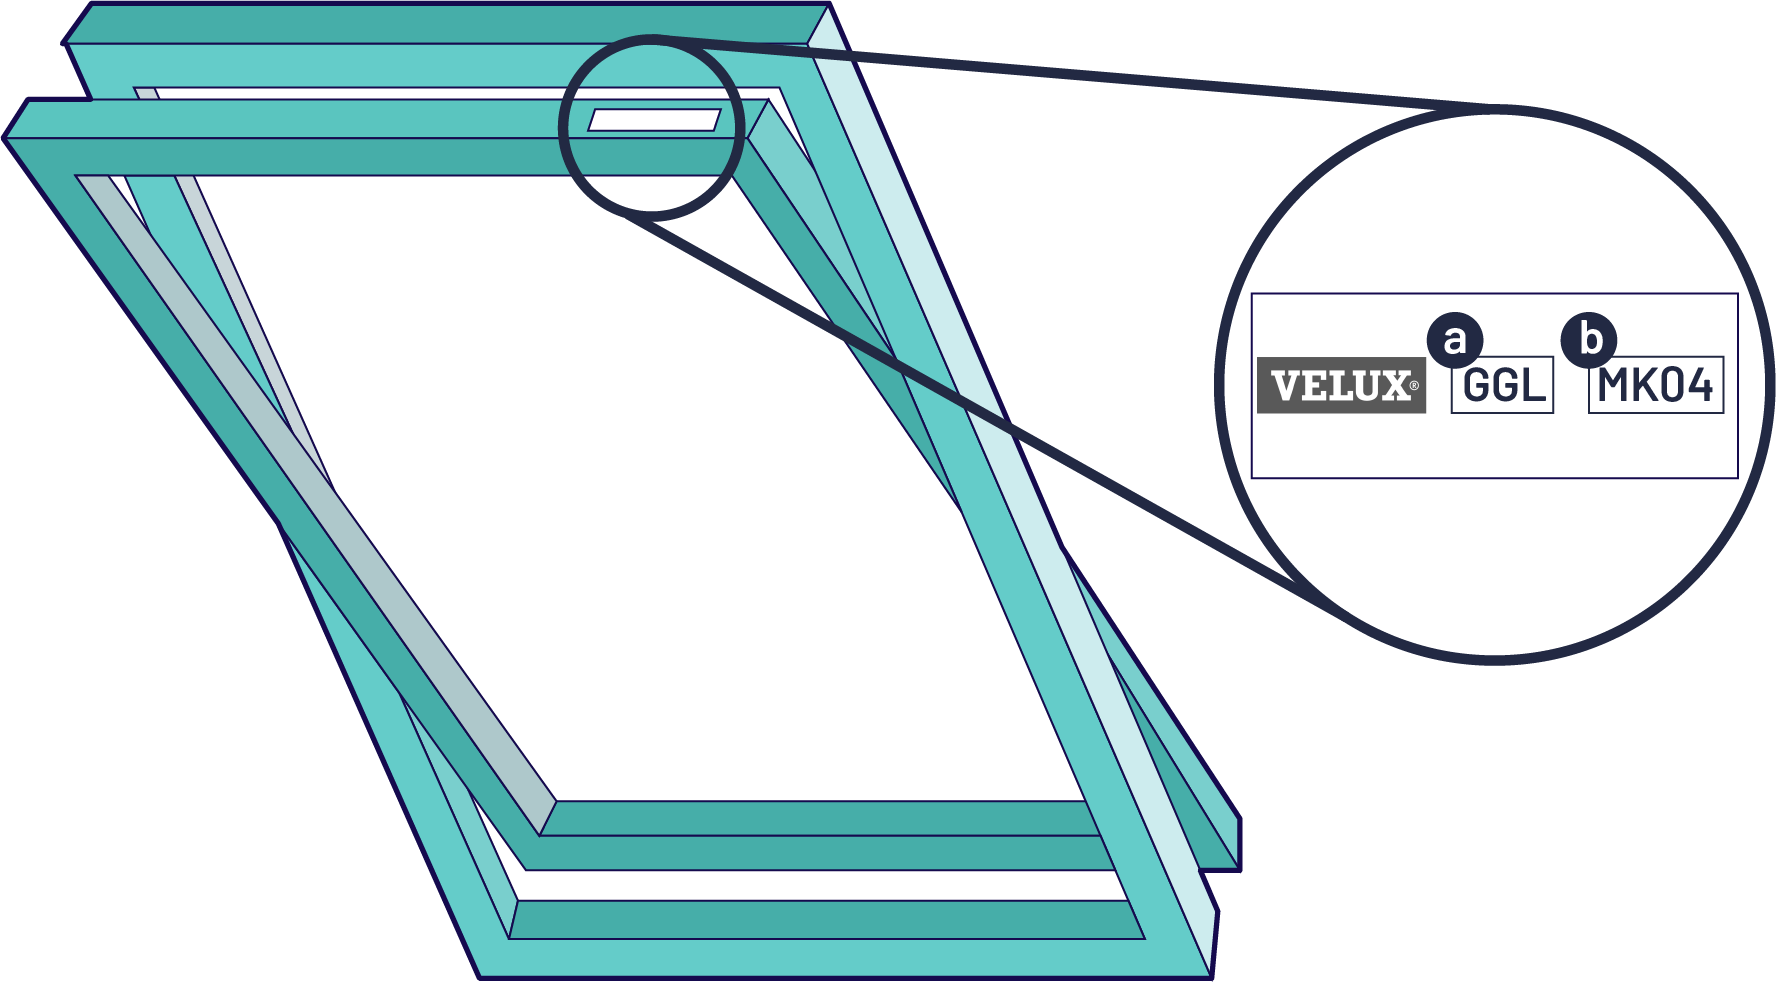 A skylight window showing where to find your velux code